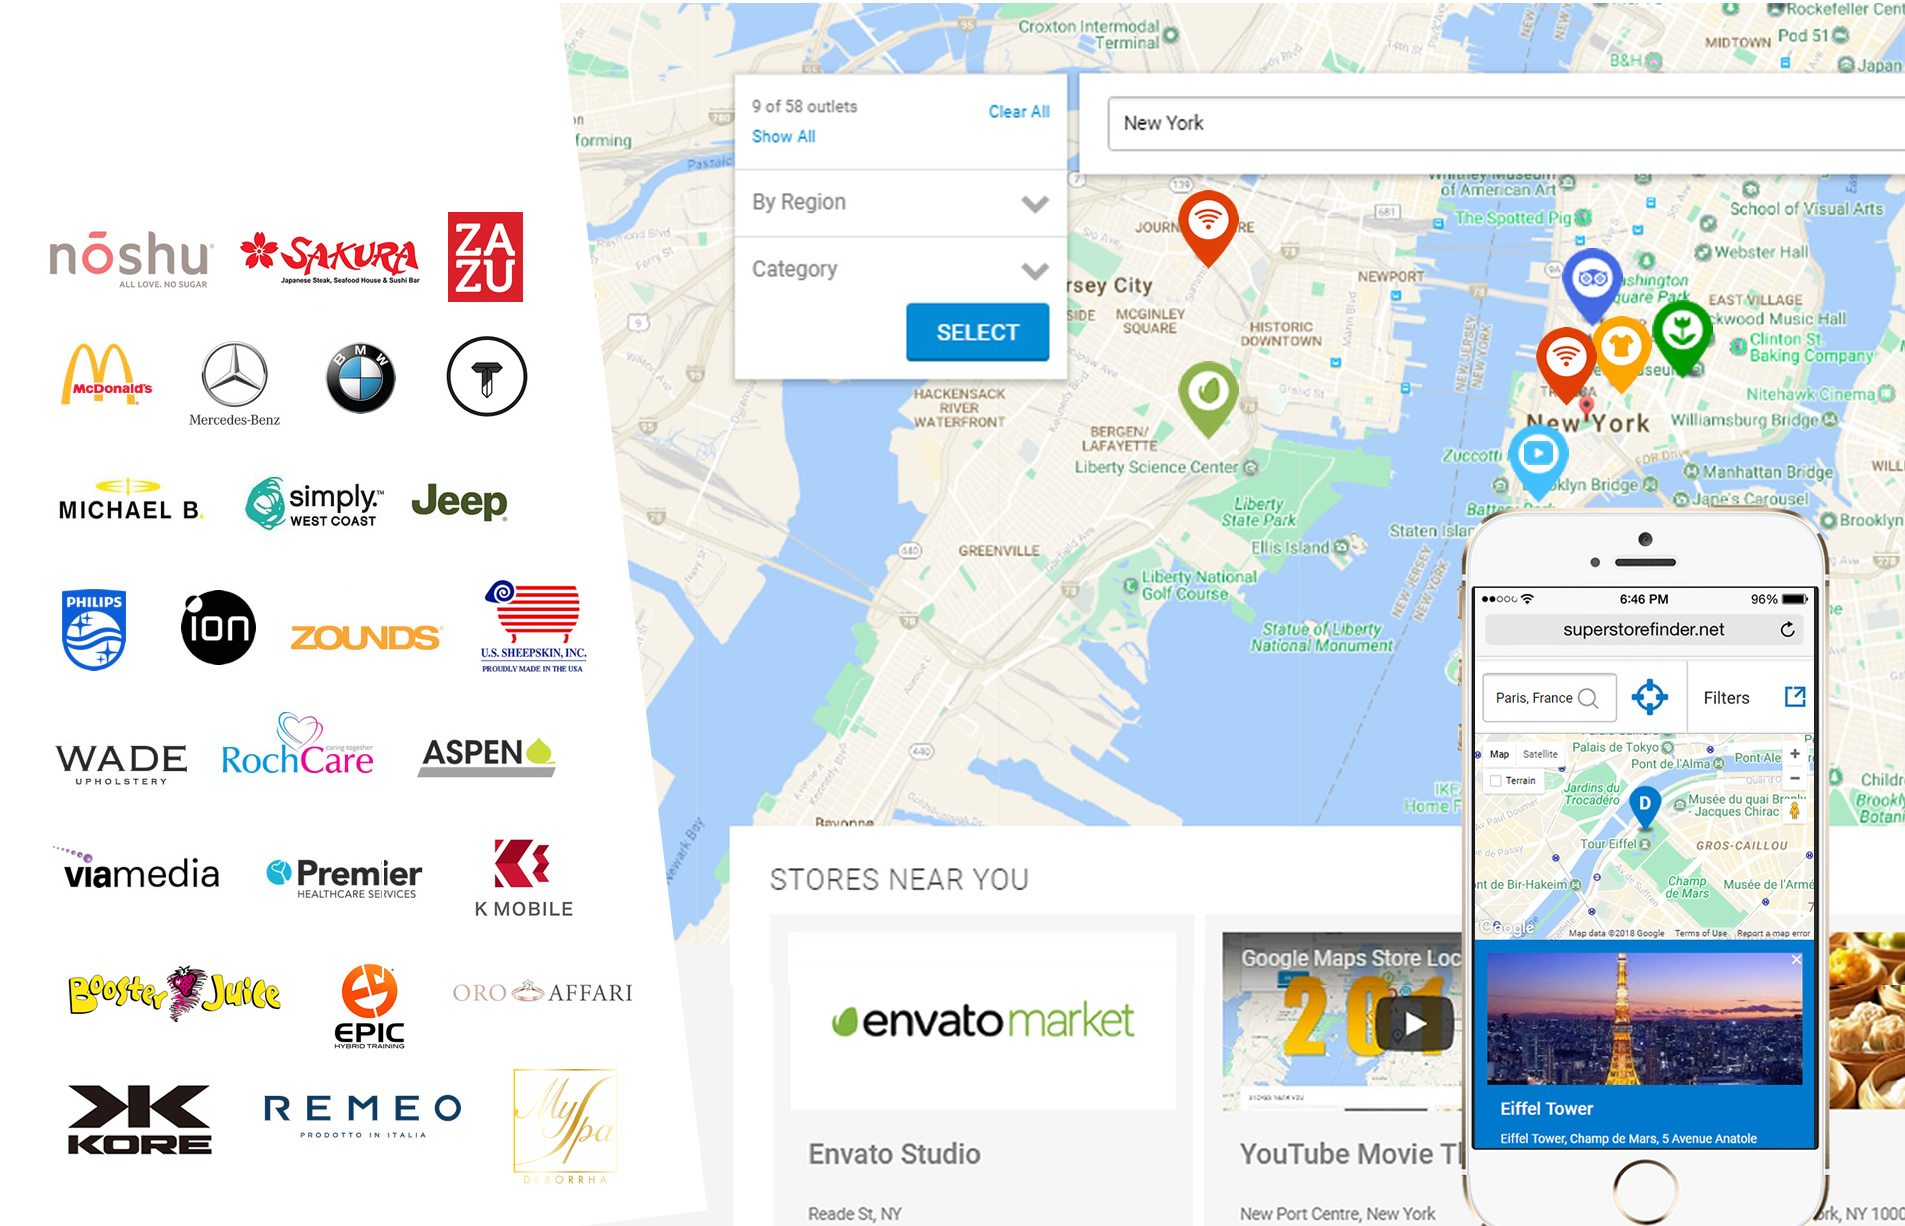 Super Store Finder - Get the Best Google Maps Store Locator ...